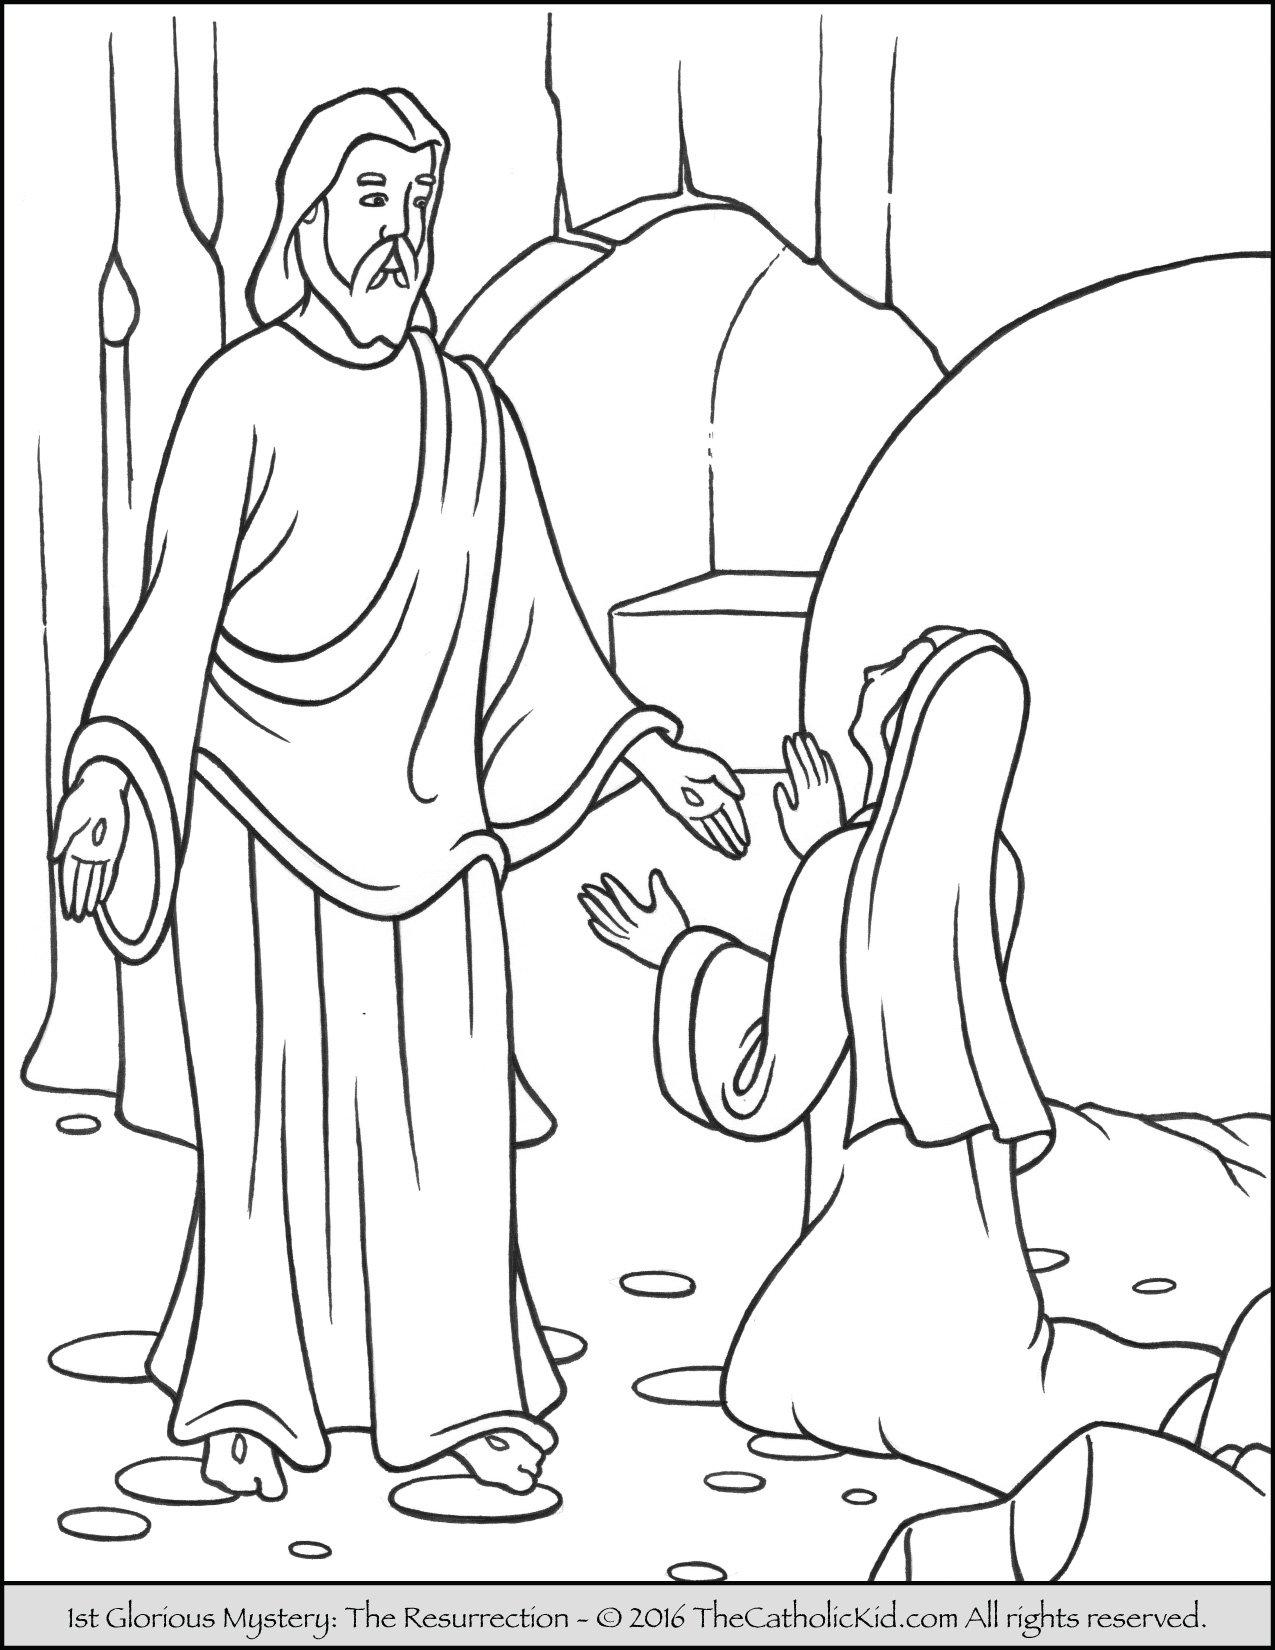 Coloring Pages Kid.com